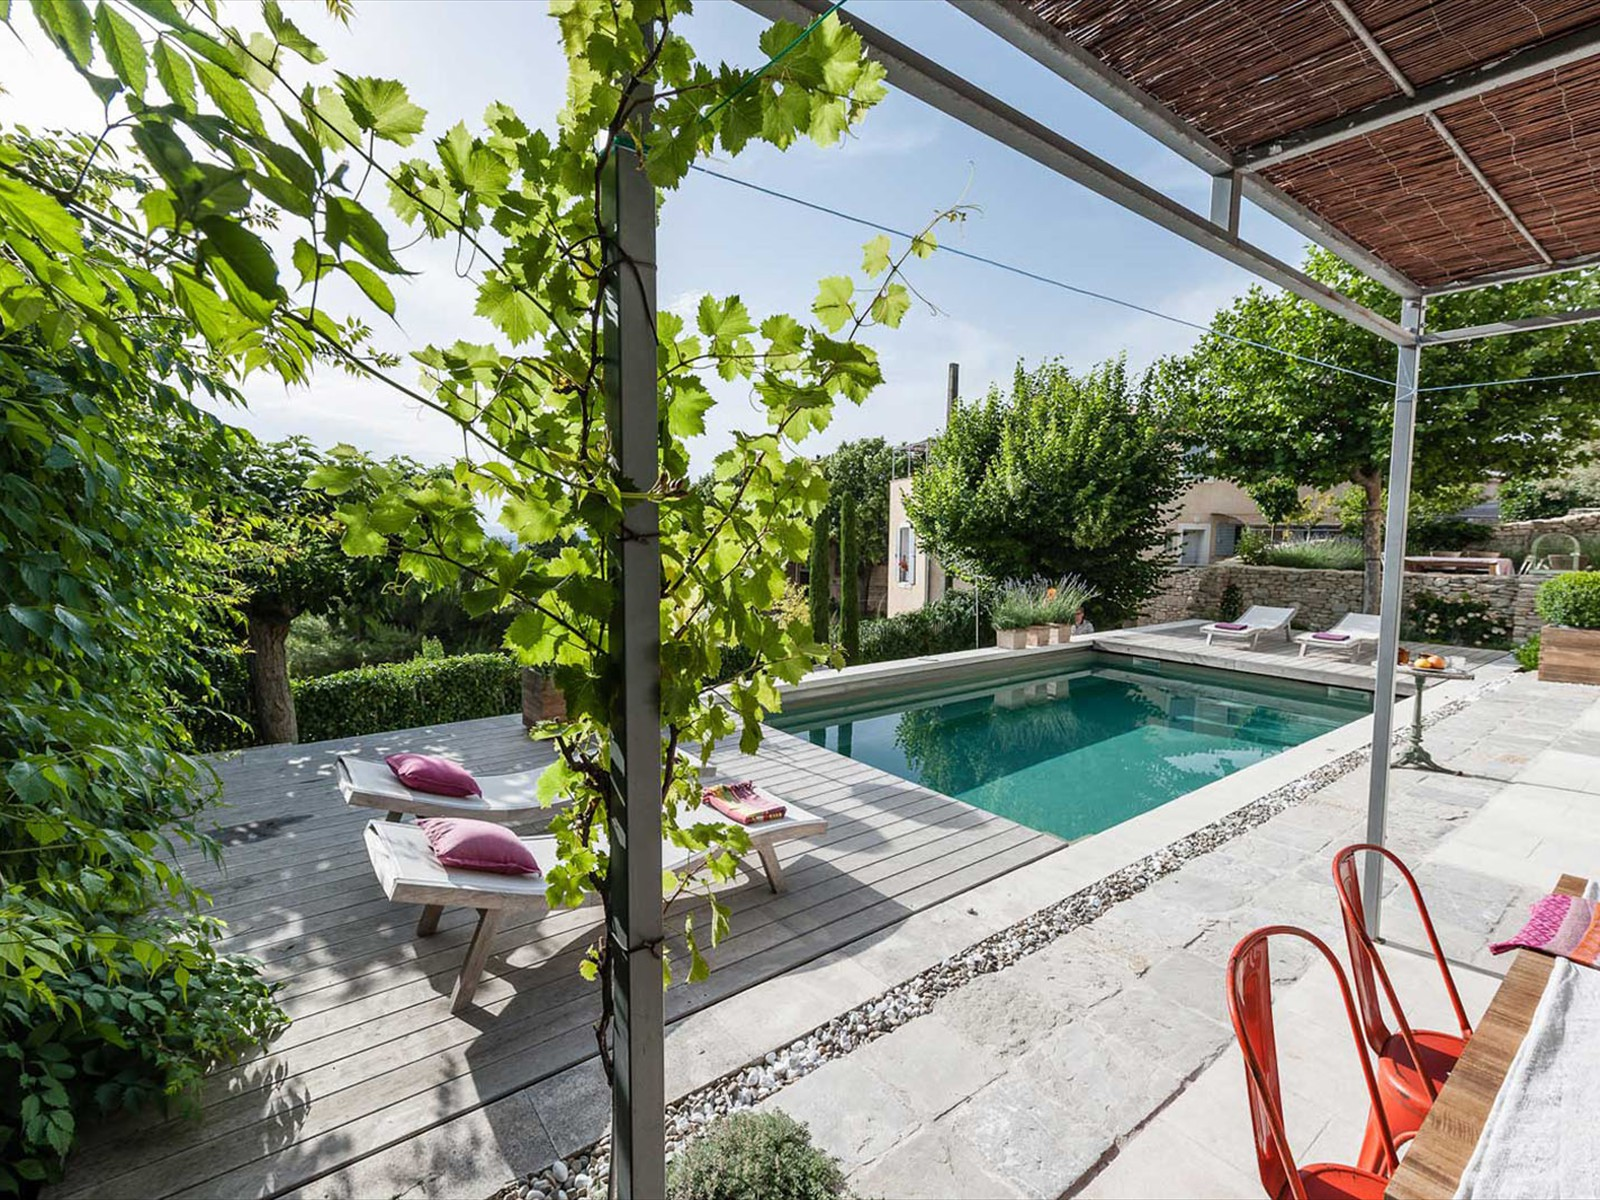 exclusive_rentals_provence_vacation_luxury_homes_holiday_rentals_mont_ventoux_luberon_18